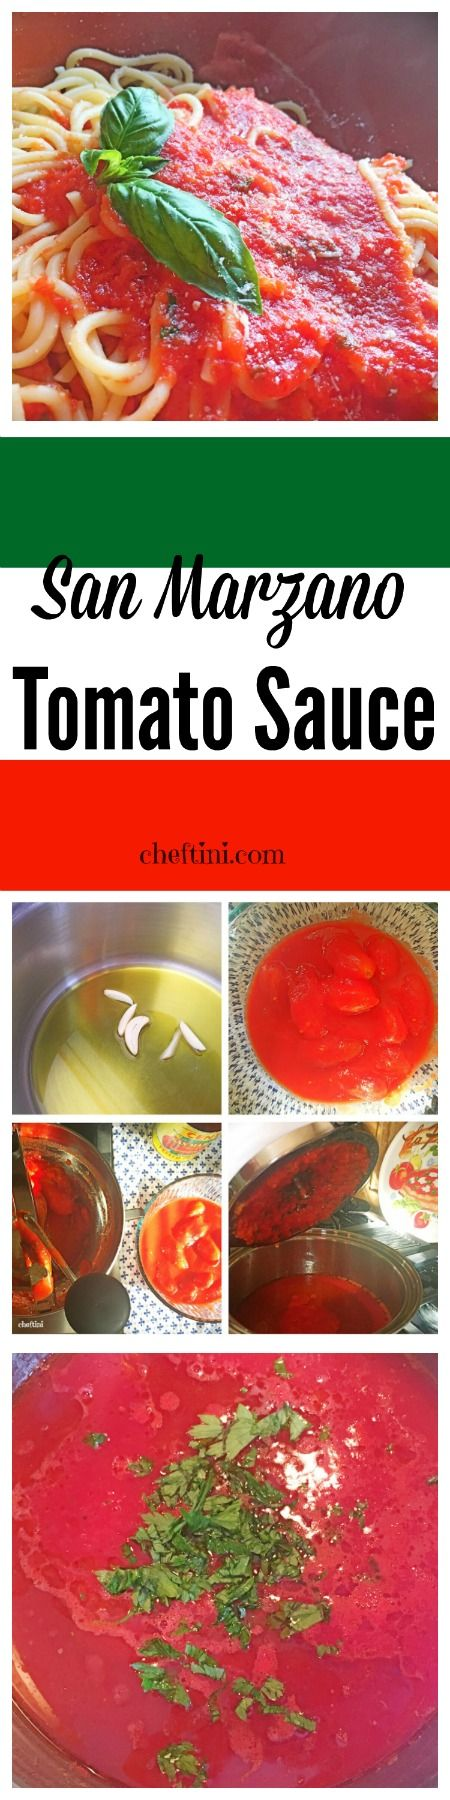 A simple and quick recipe for a traditional Tomato Sauce using San Marzano tomatoes.